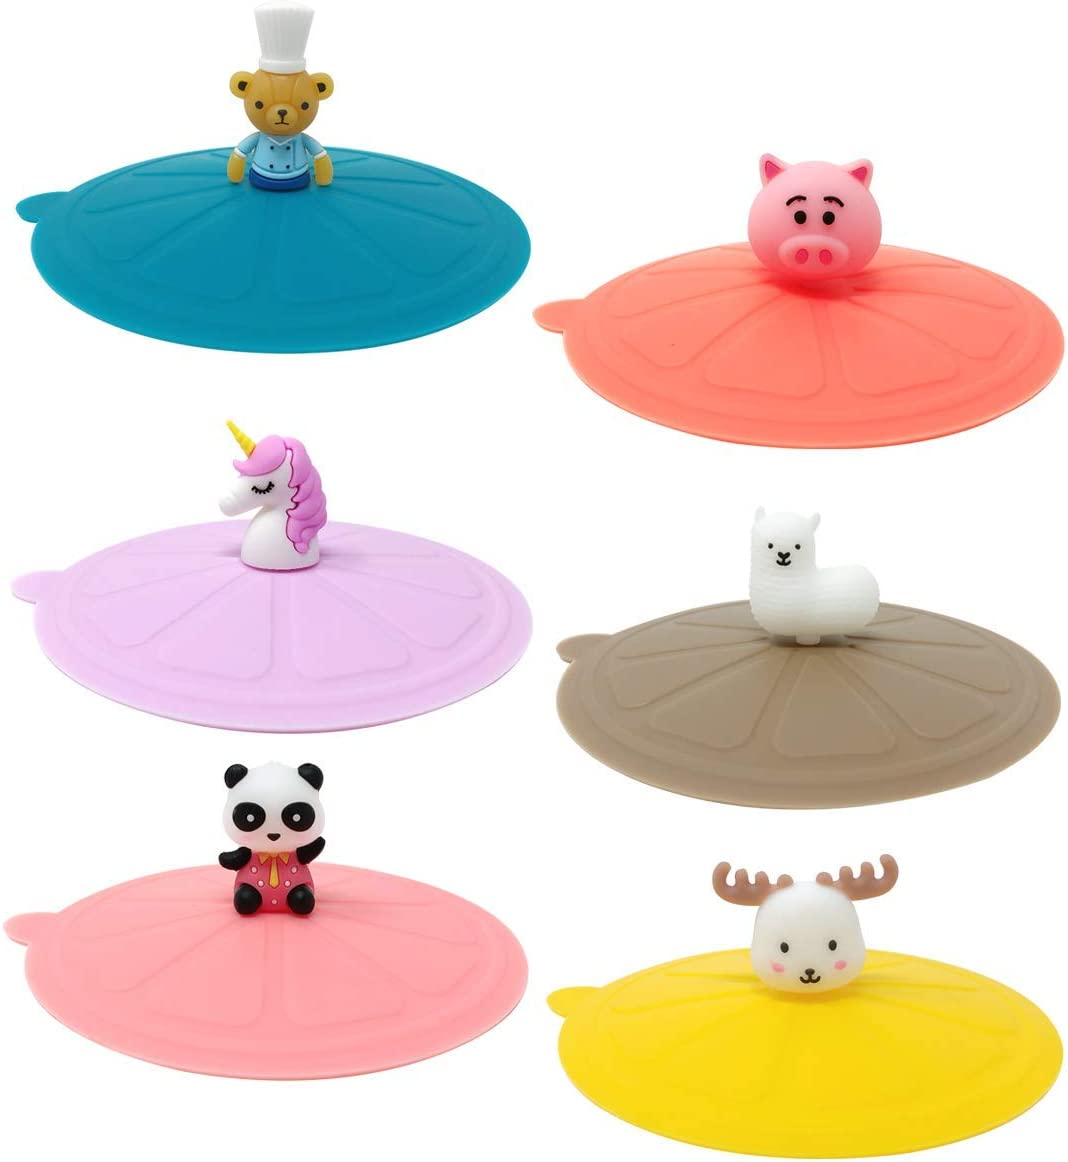 Wrapables Silicone Cup Lids, Anti-Dust Airtight Mug Covers for Hot and Cold Beverages (Set of 6), Charming Animals